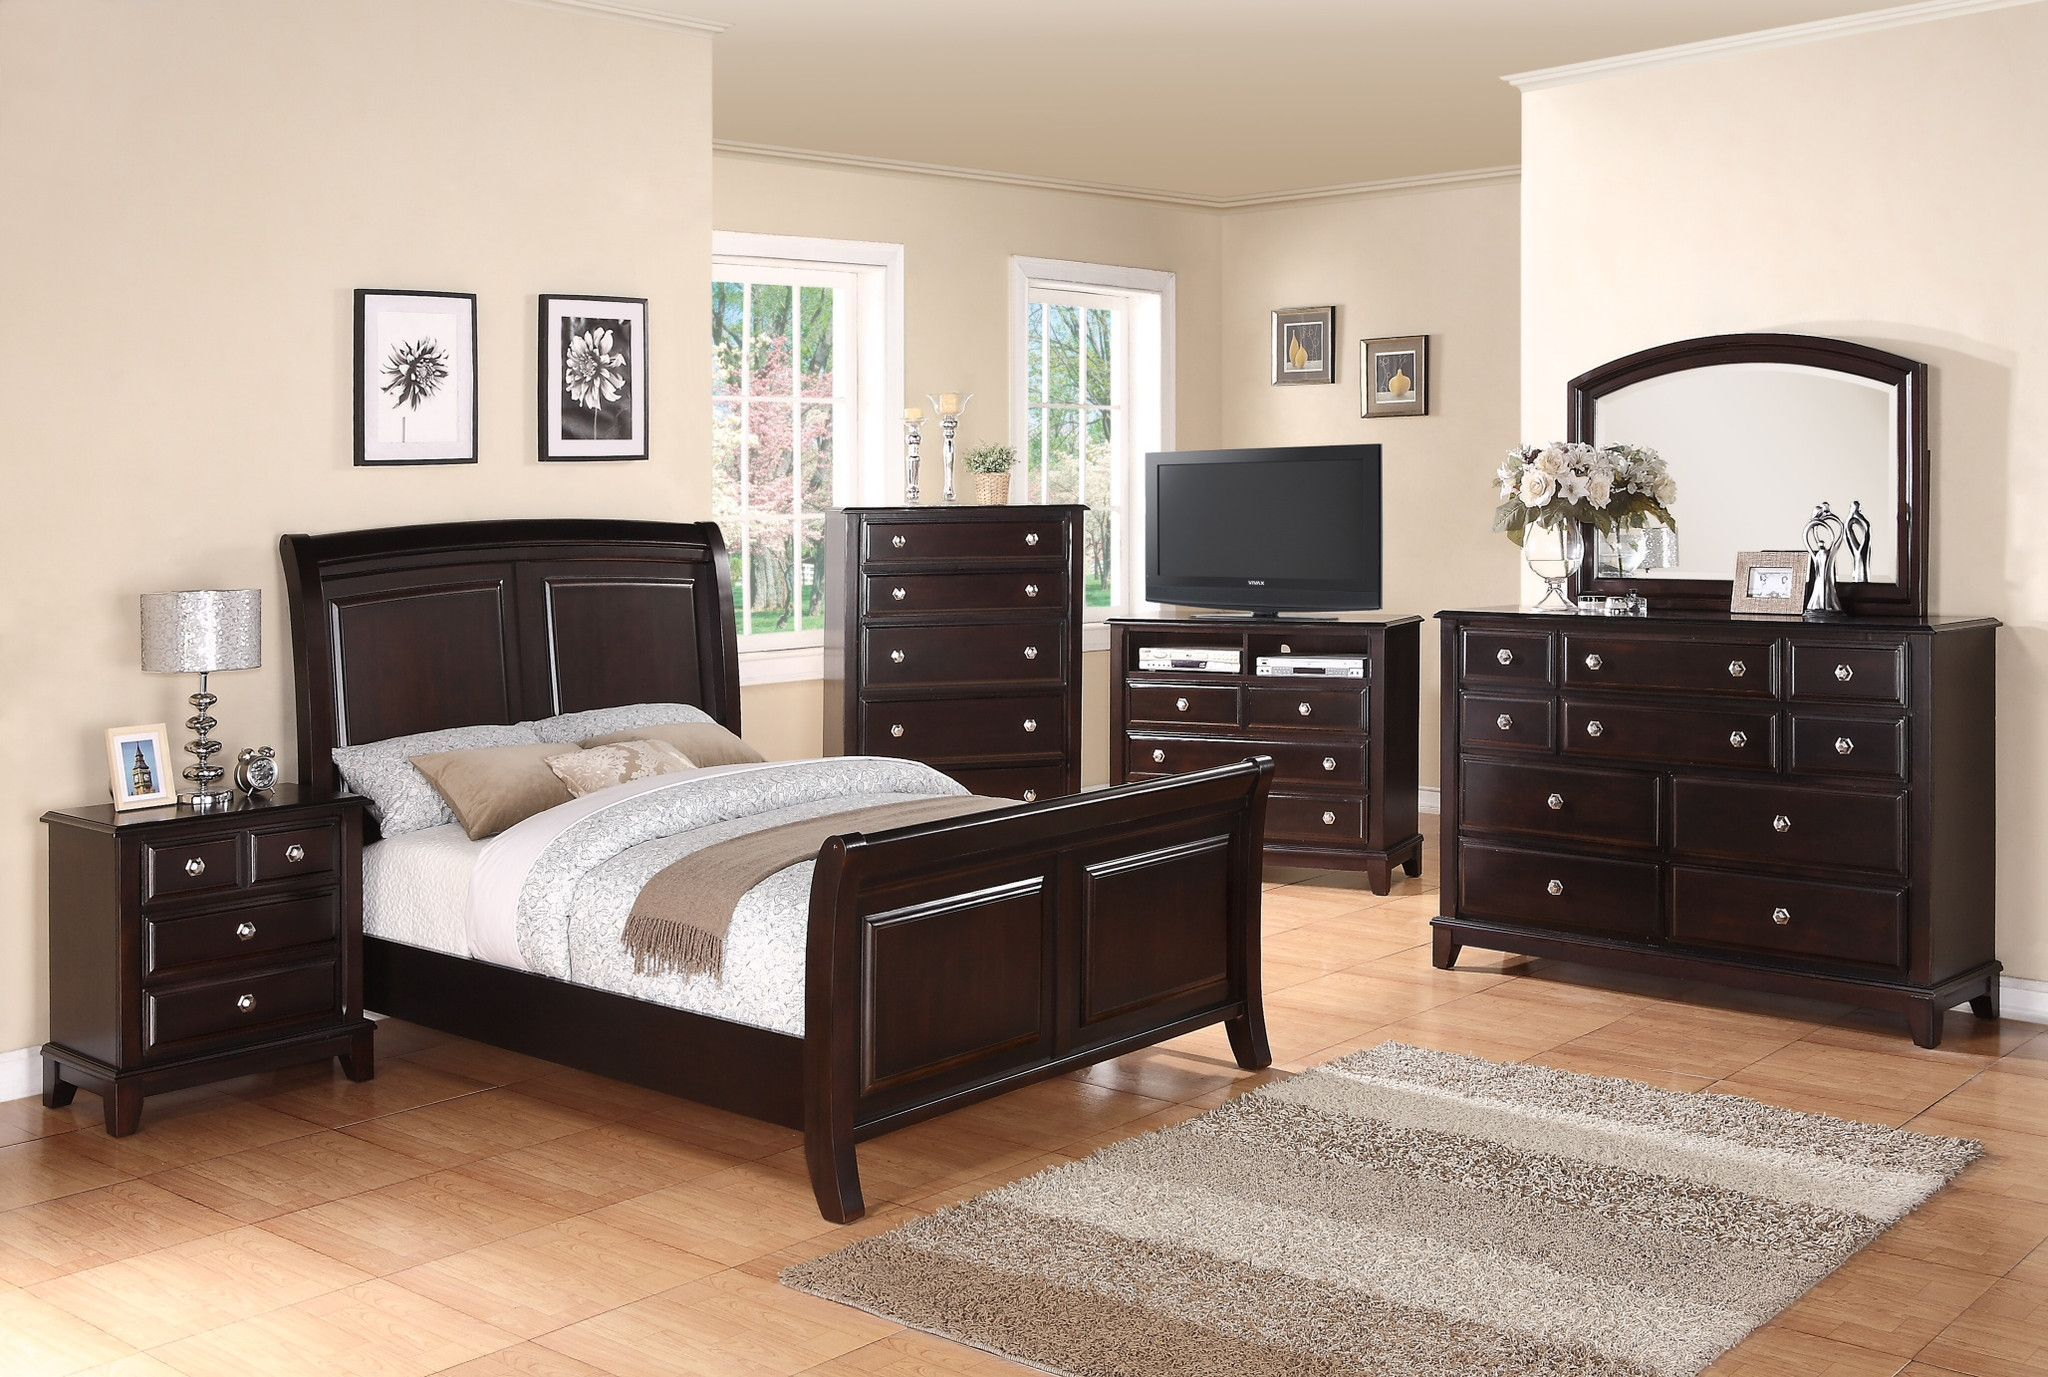 Forty Winks Aurora modern dark wood stained bedroom furniture